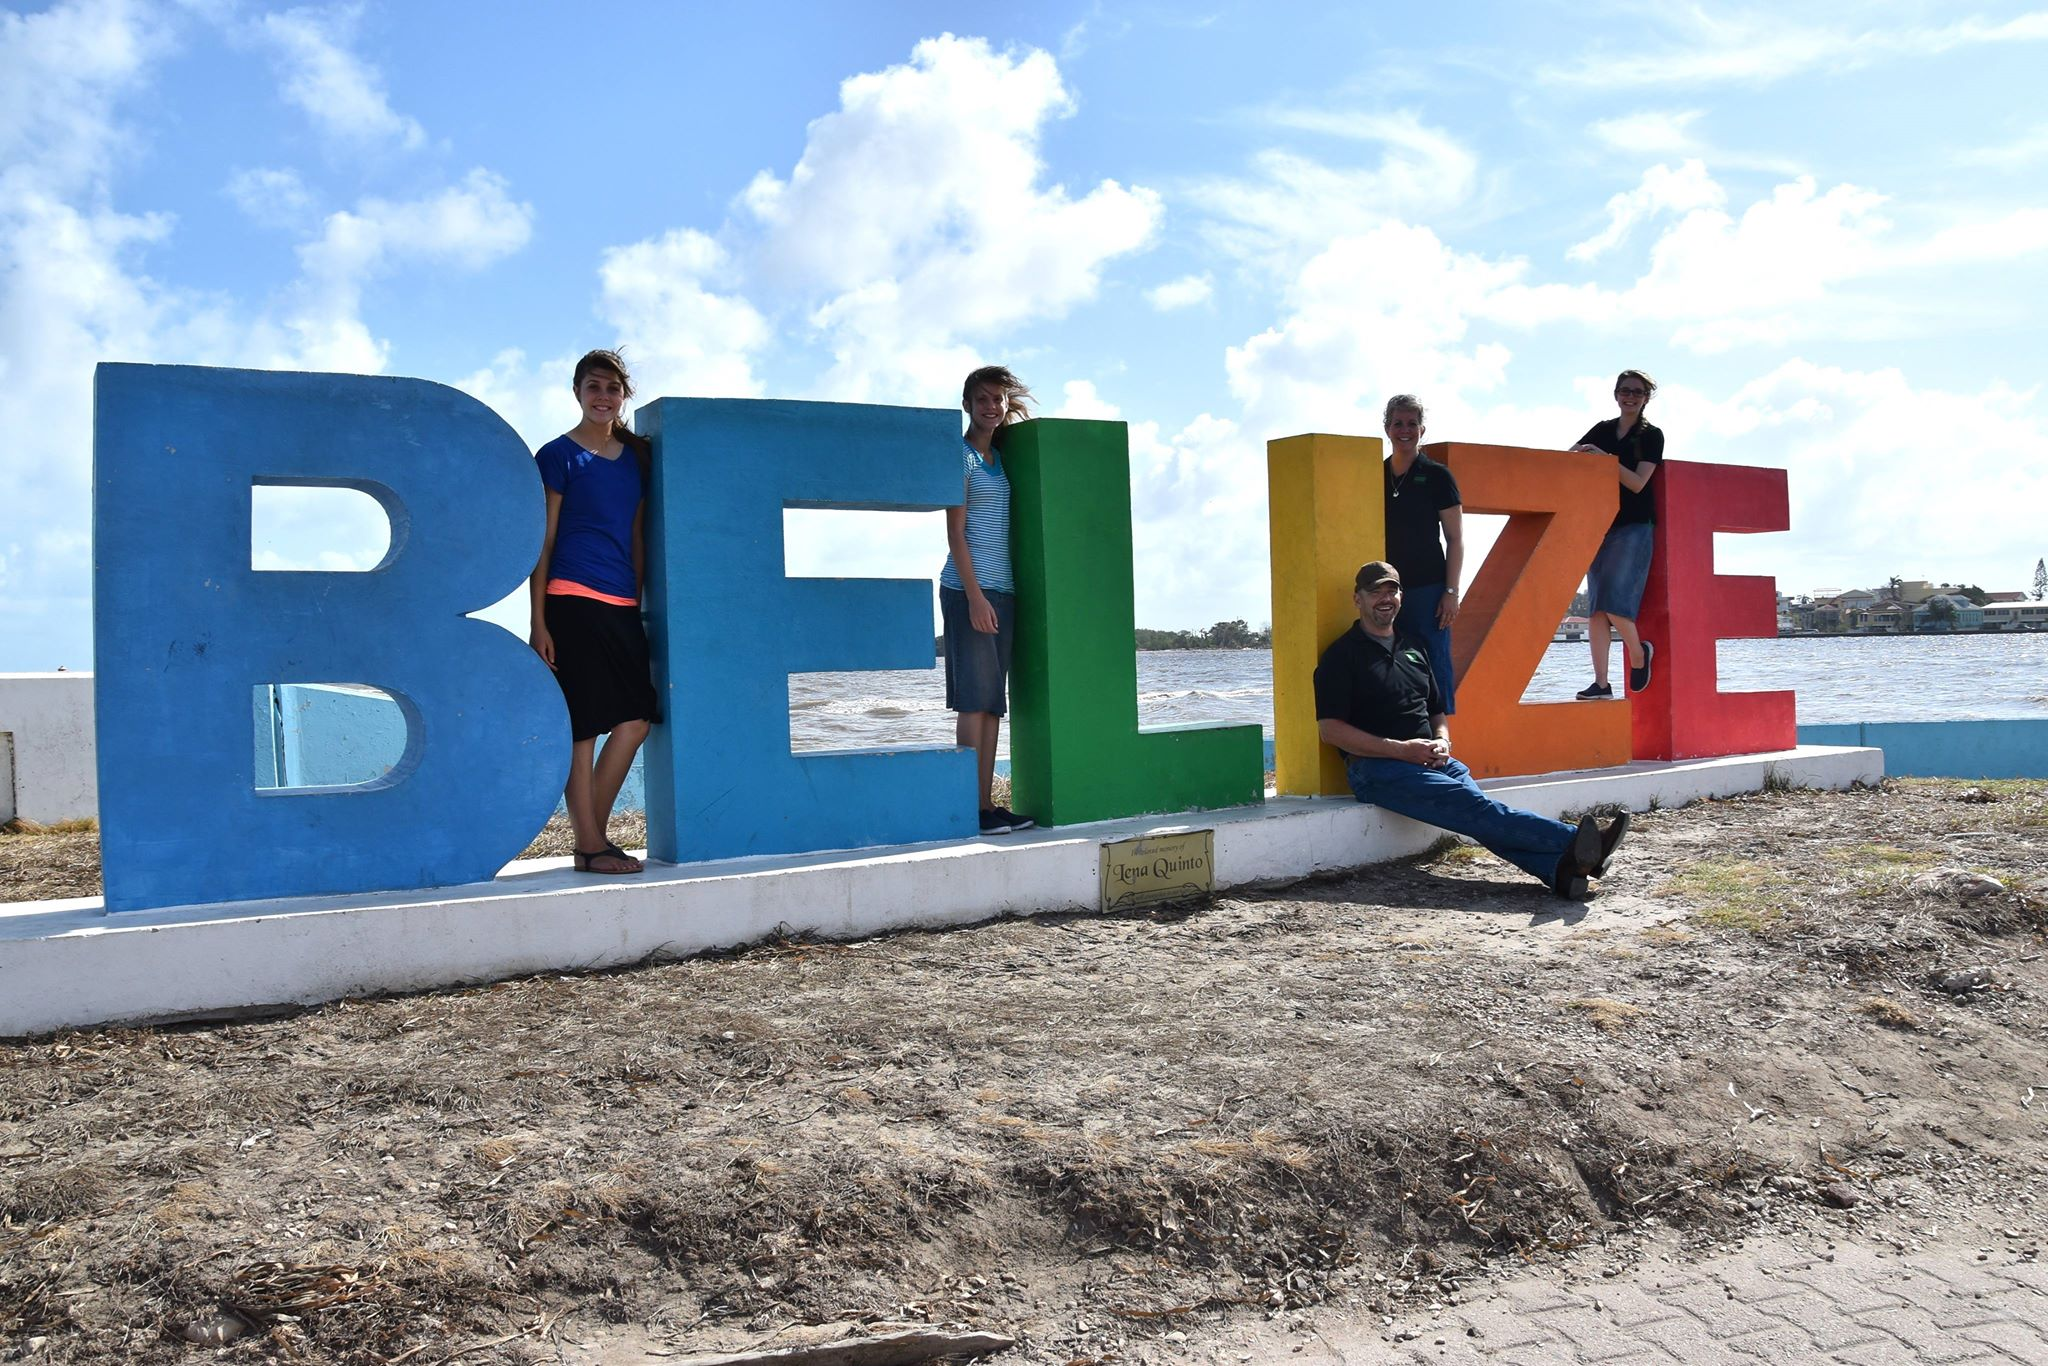 Is Belize Really Right for You